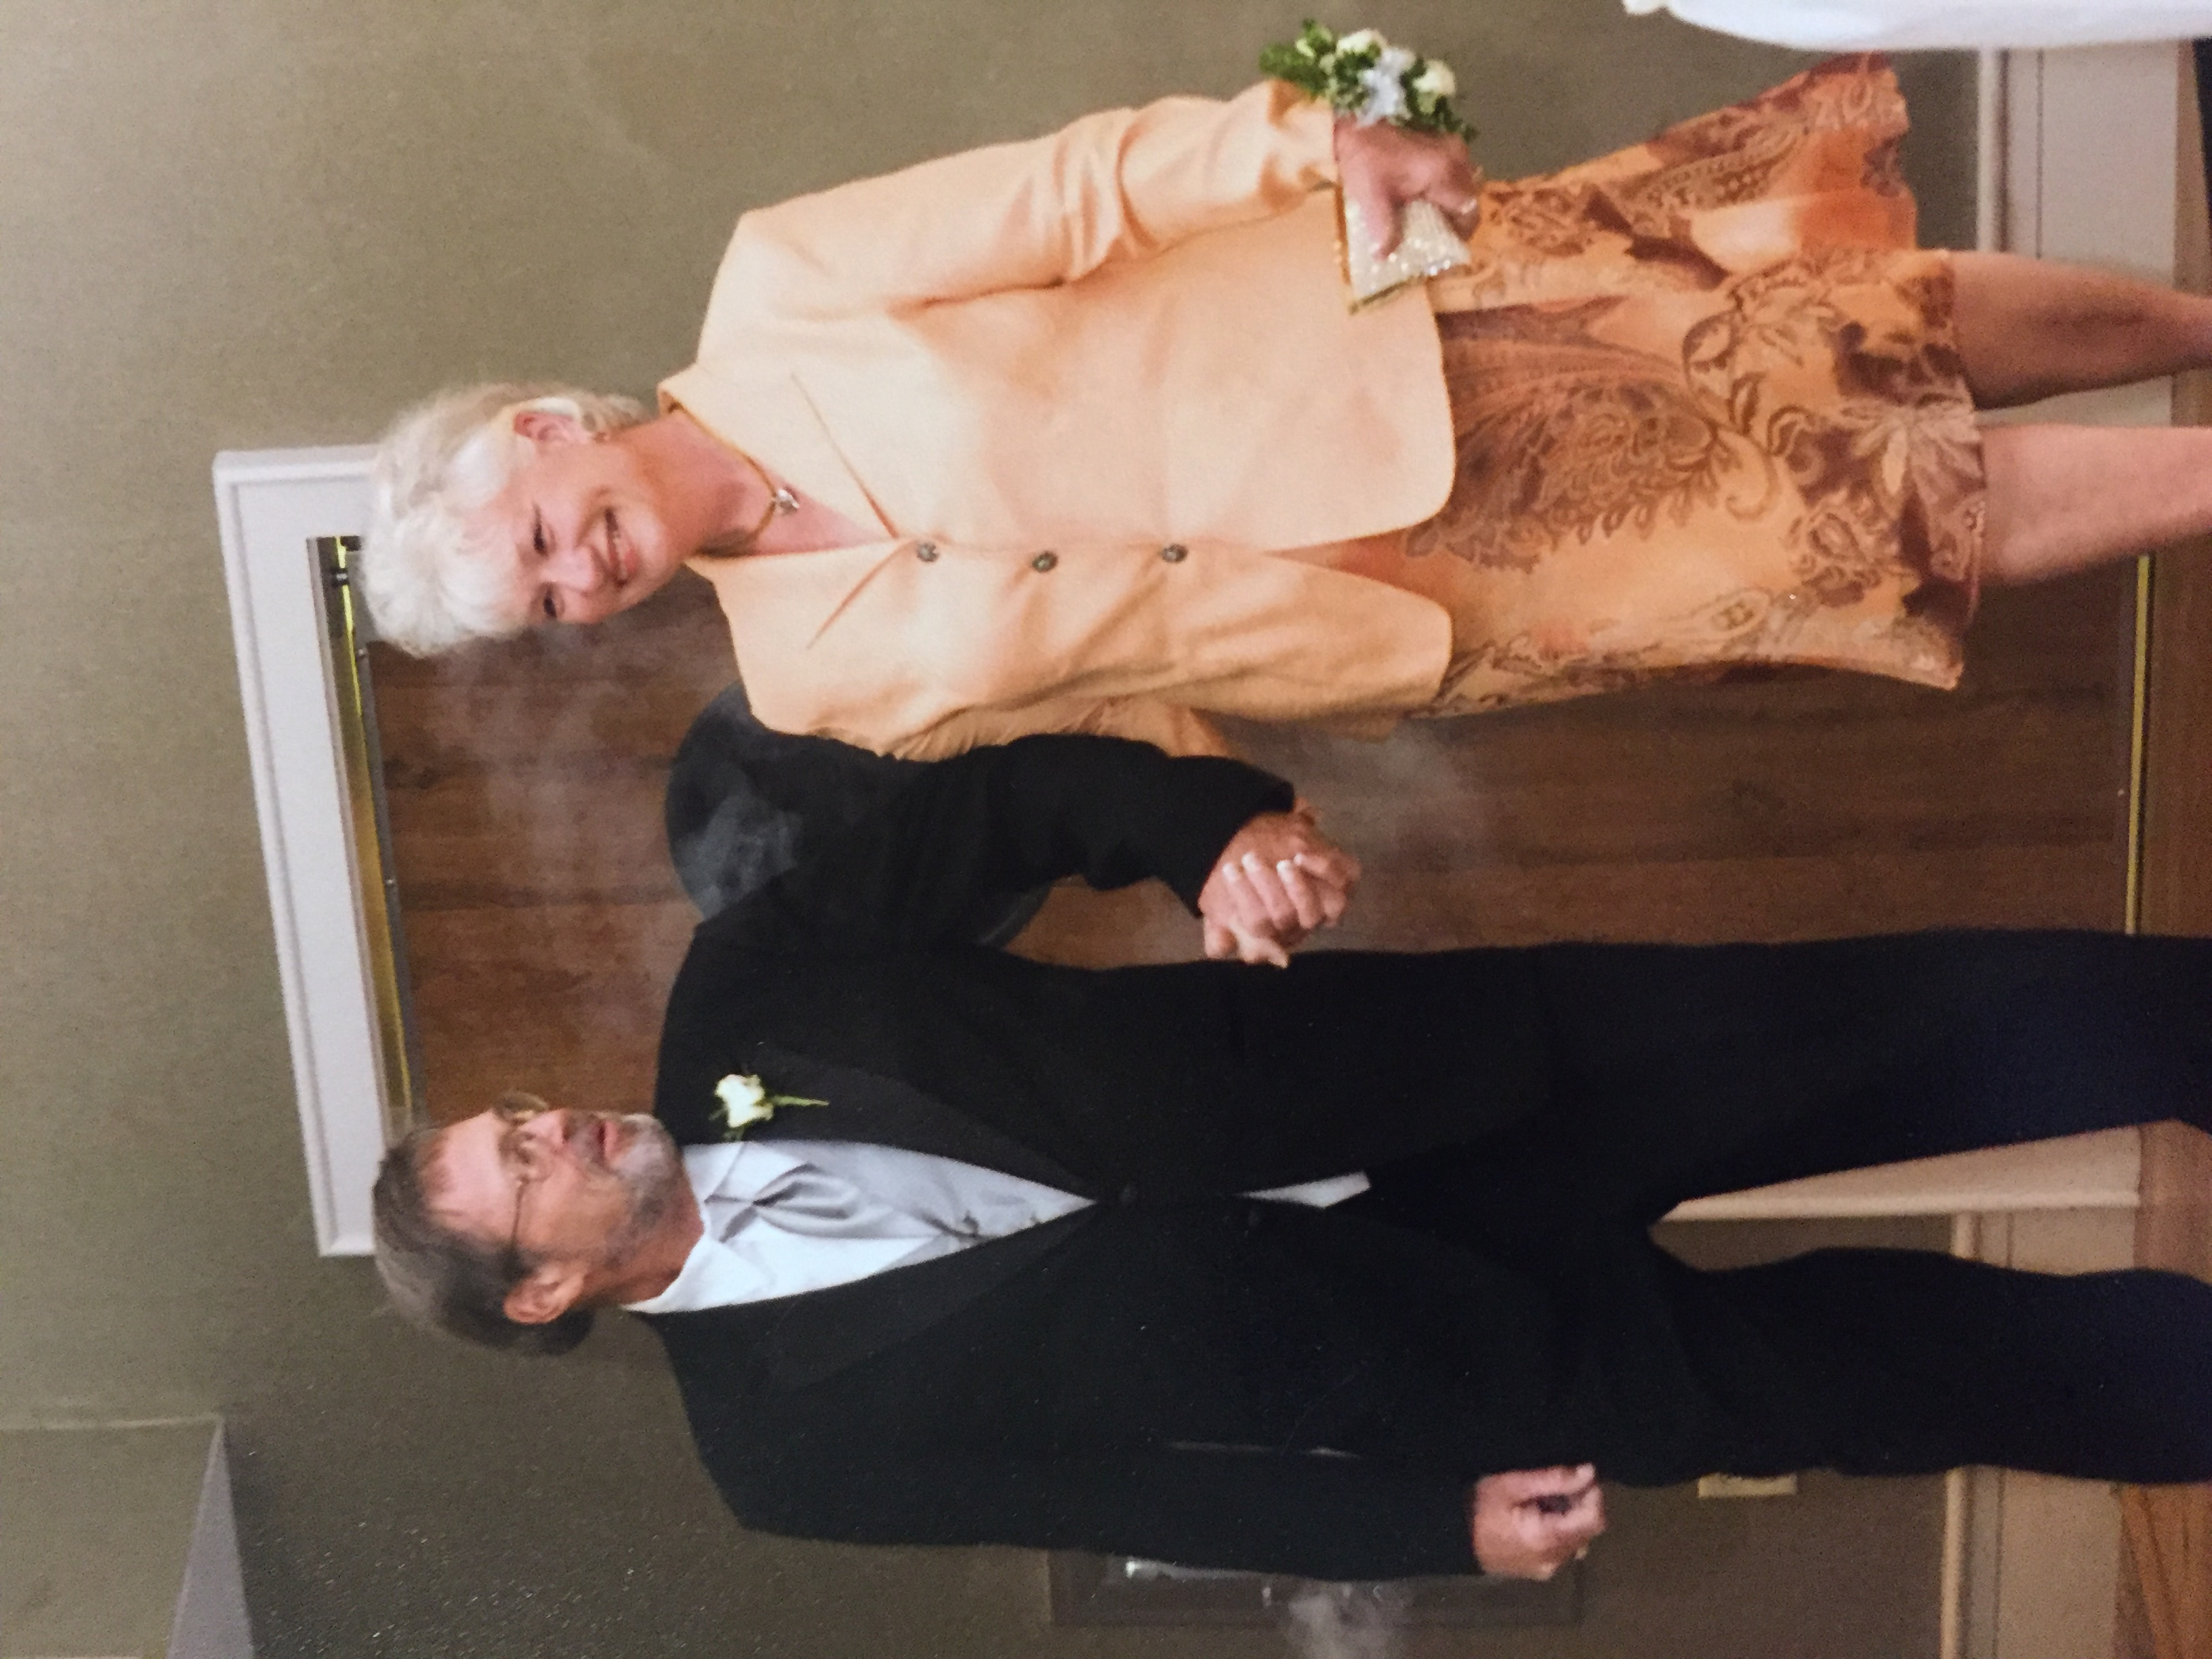 My sweet Mother-n-law, I will always cherish you and the wonderful times we shared. I will miss you.